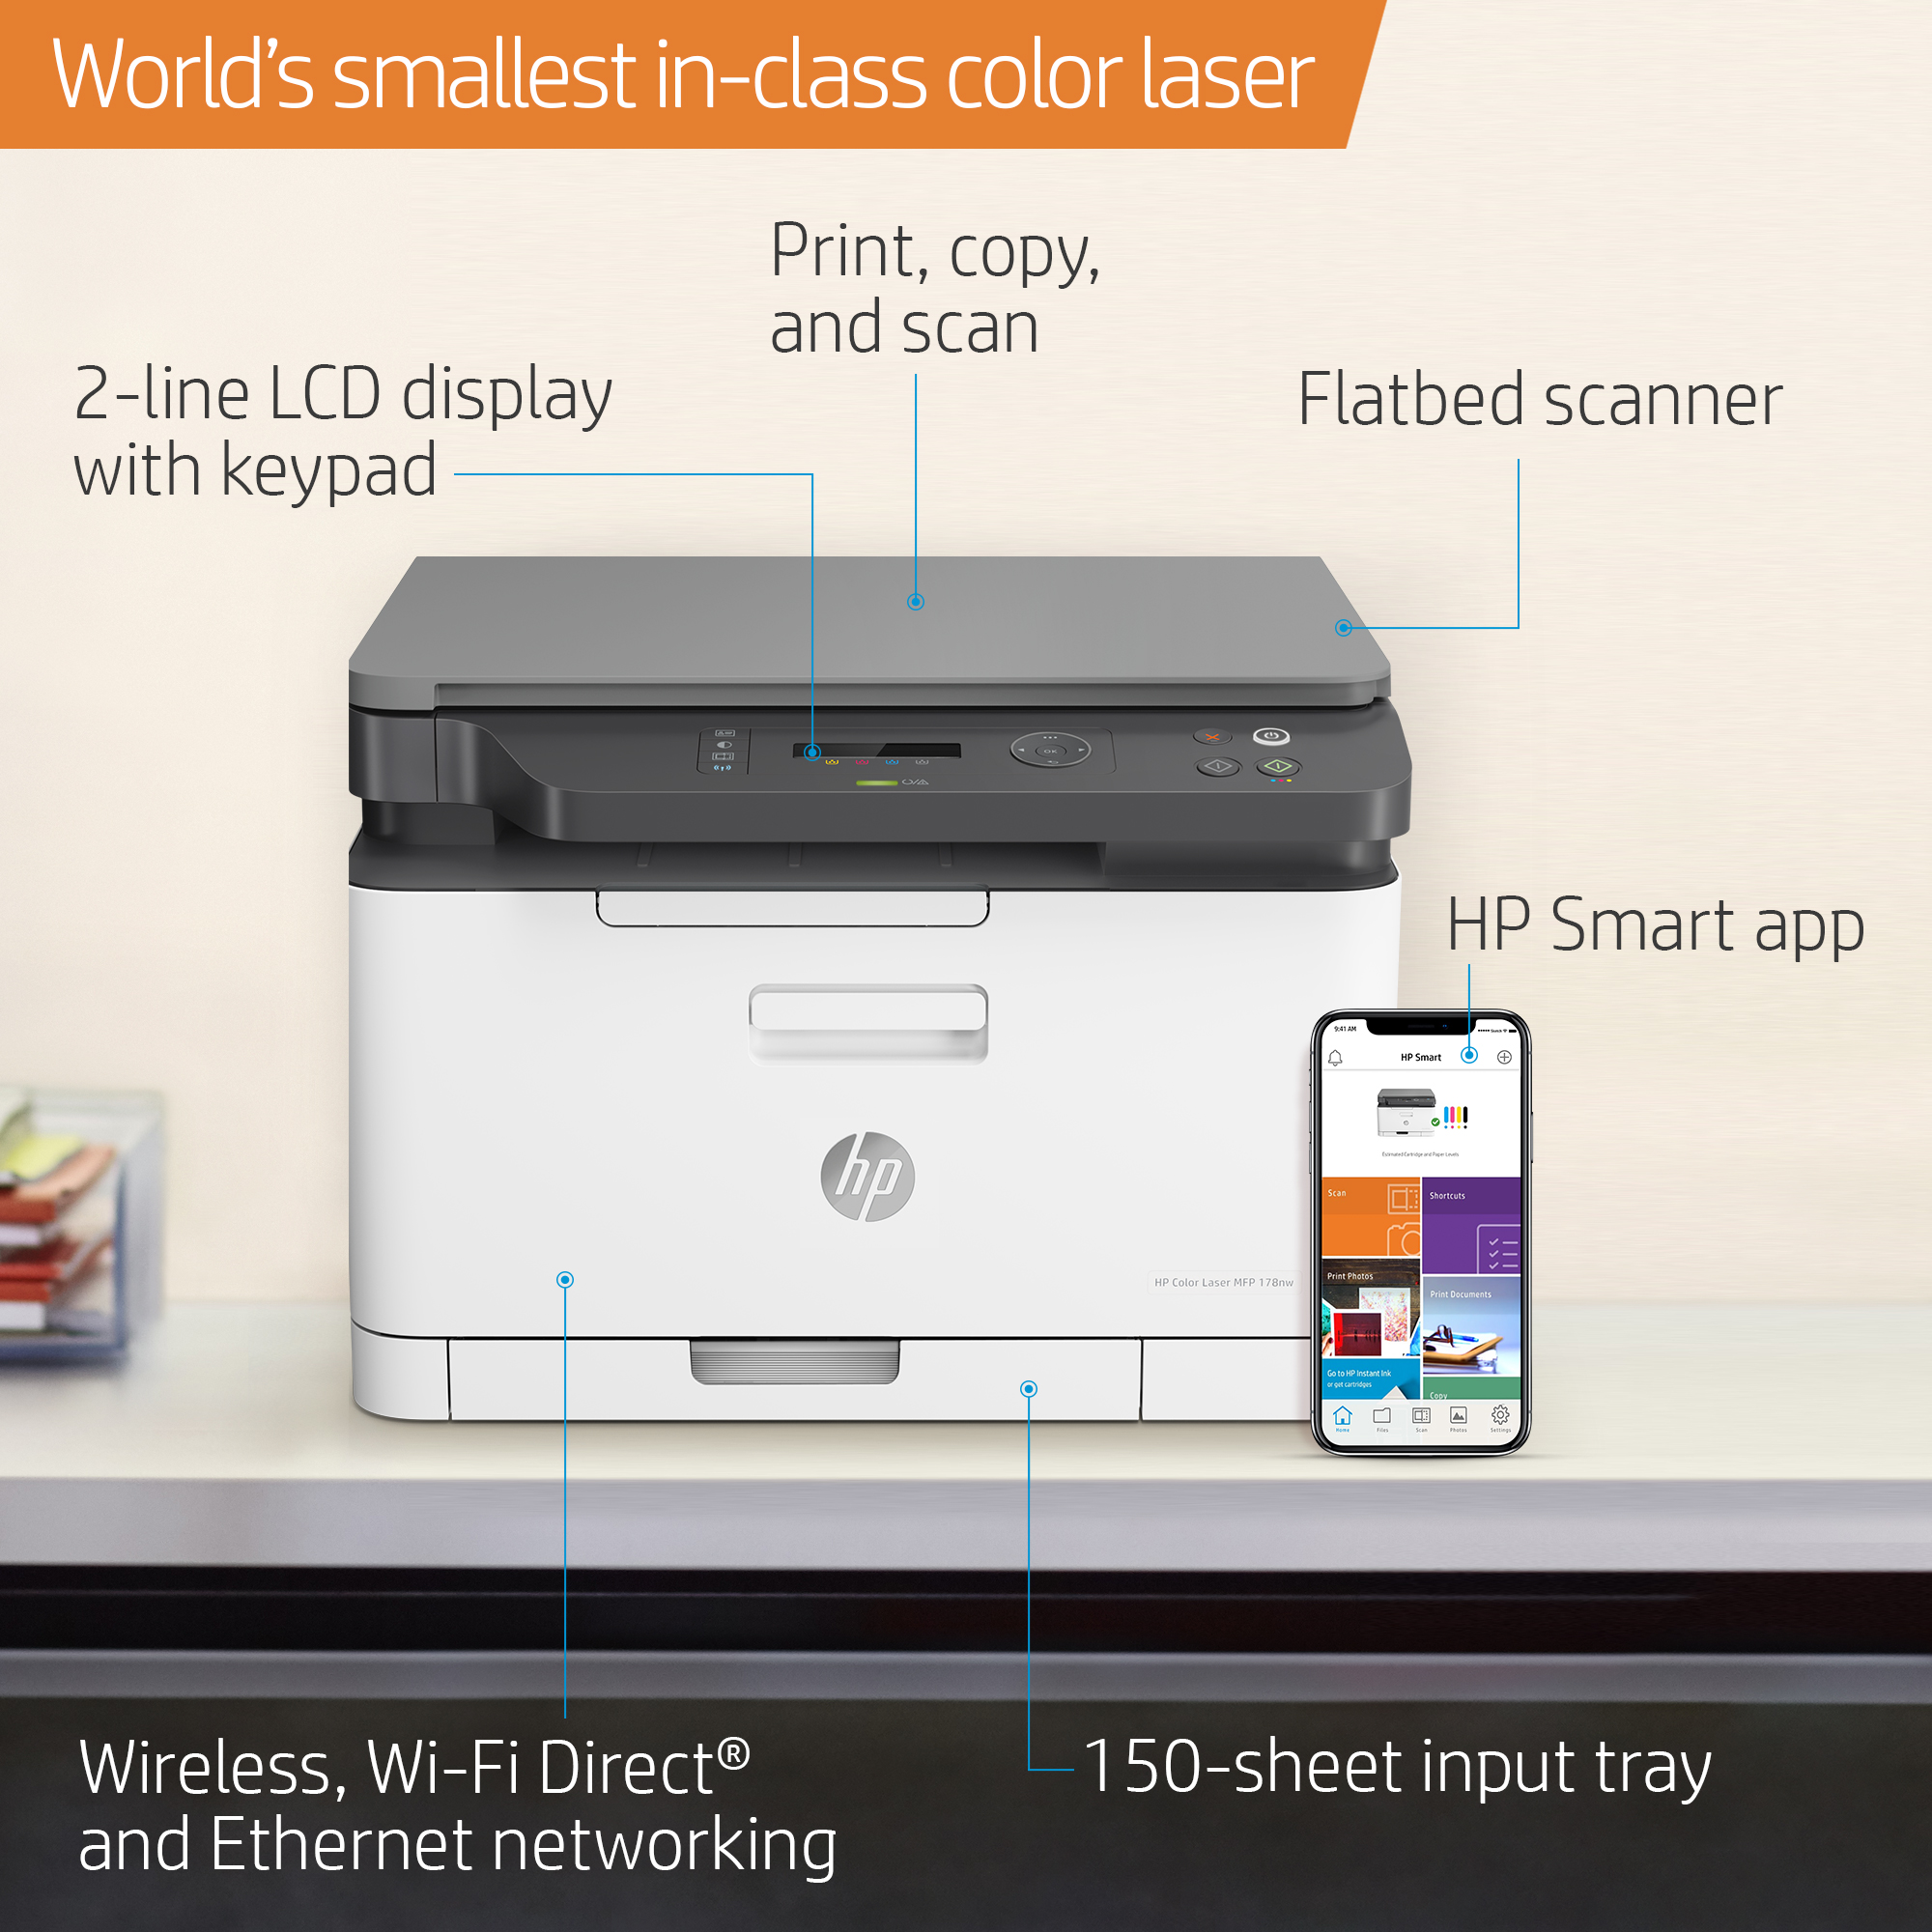 HP Color Laser MFP 178nw Wireless Printer, 18ppm Black/4ppm Color, 600x600  dpi (Color), 150 Sheets Tray - Print, Copy, Scan